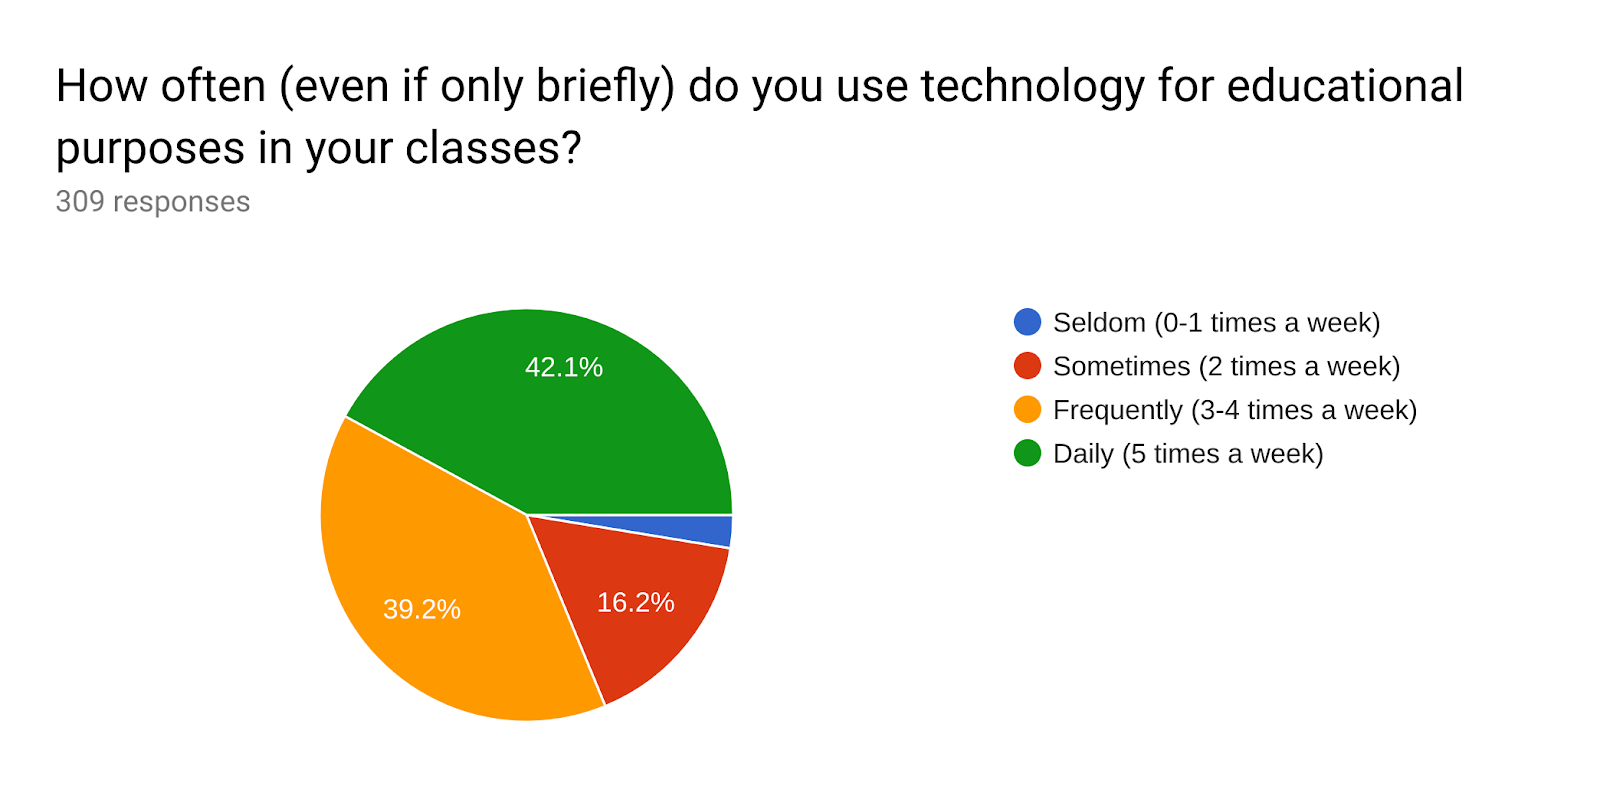 Forms response chart. Question title: How often (even if only briefly) do you use technology for educational purposes in your classes?. Number of responses: 309 responses.